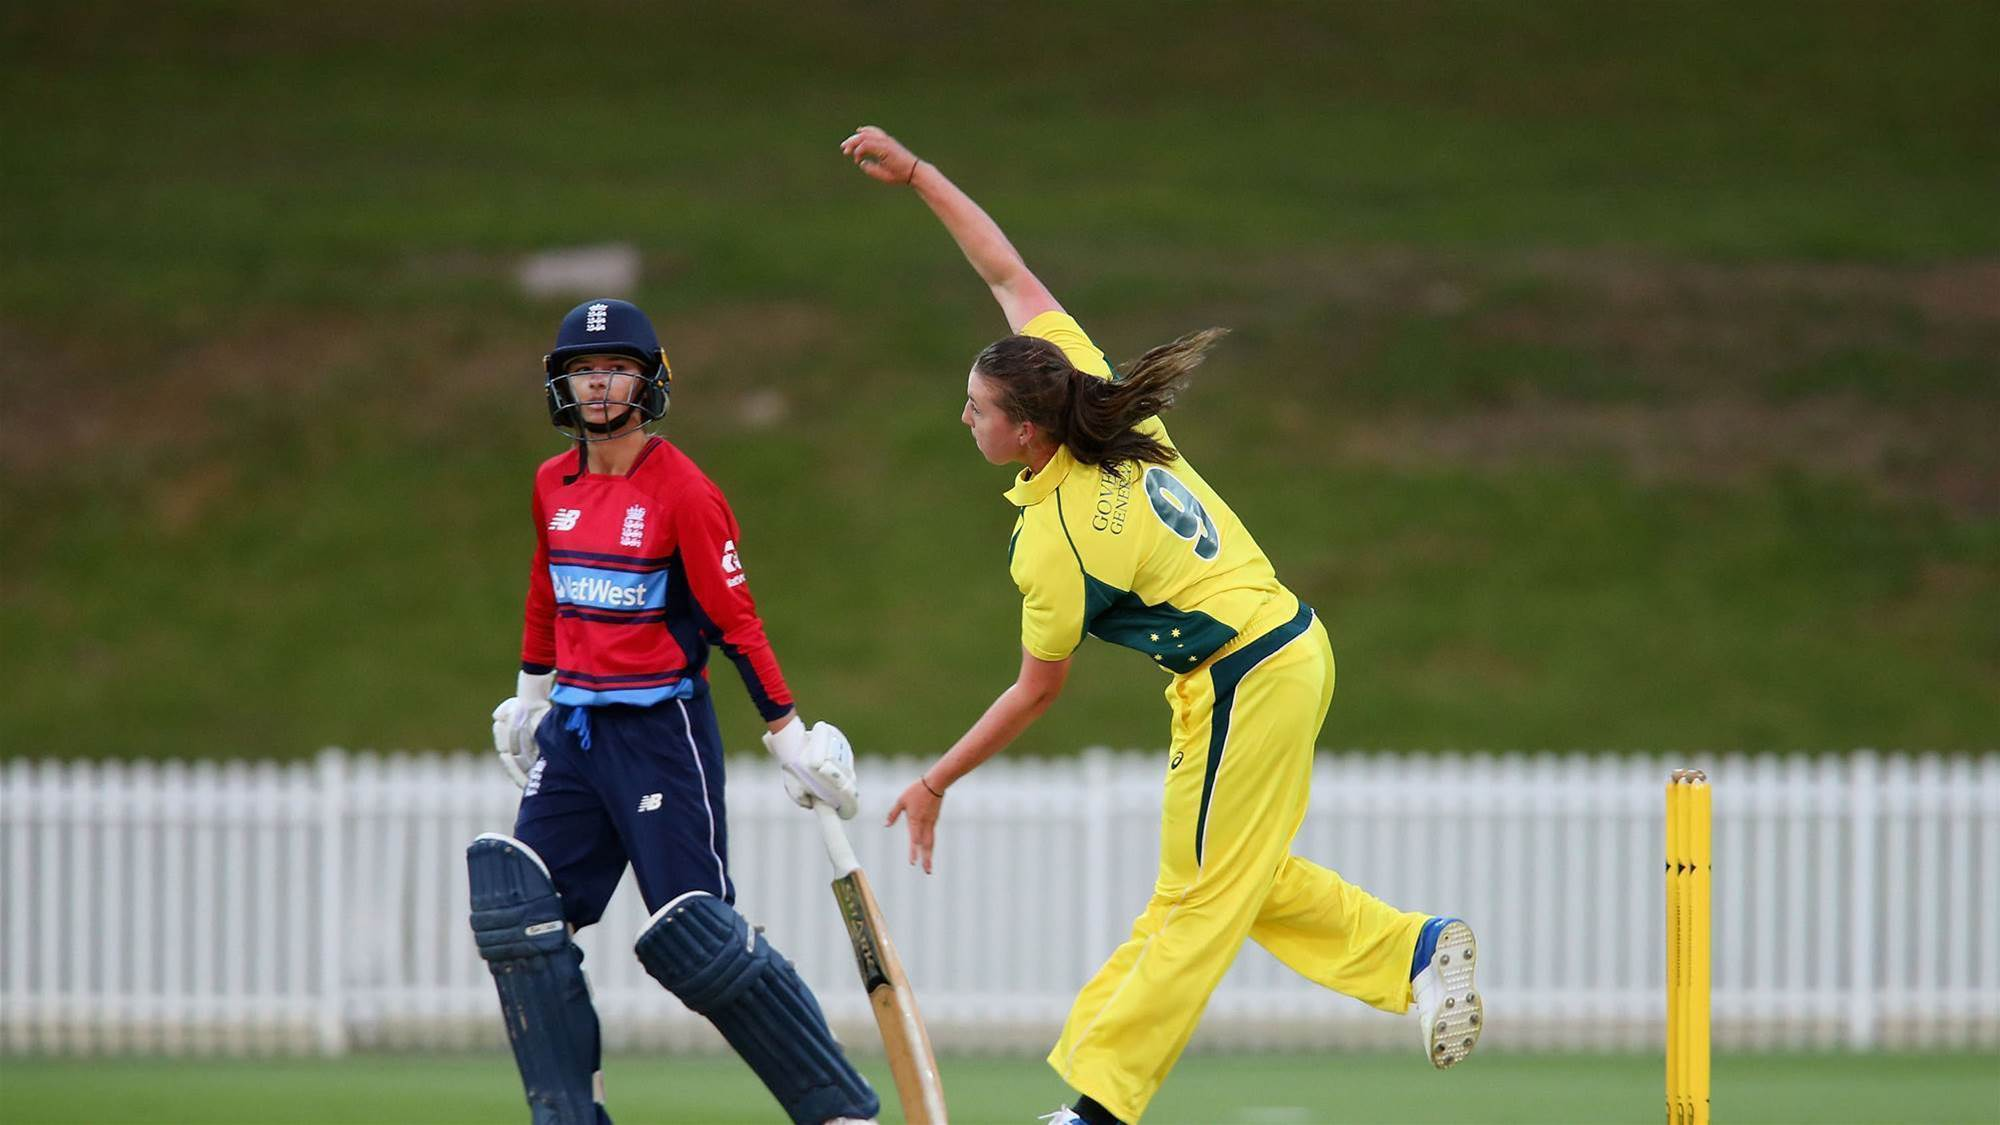 Australia's U19 women's cricket team are back